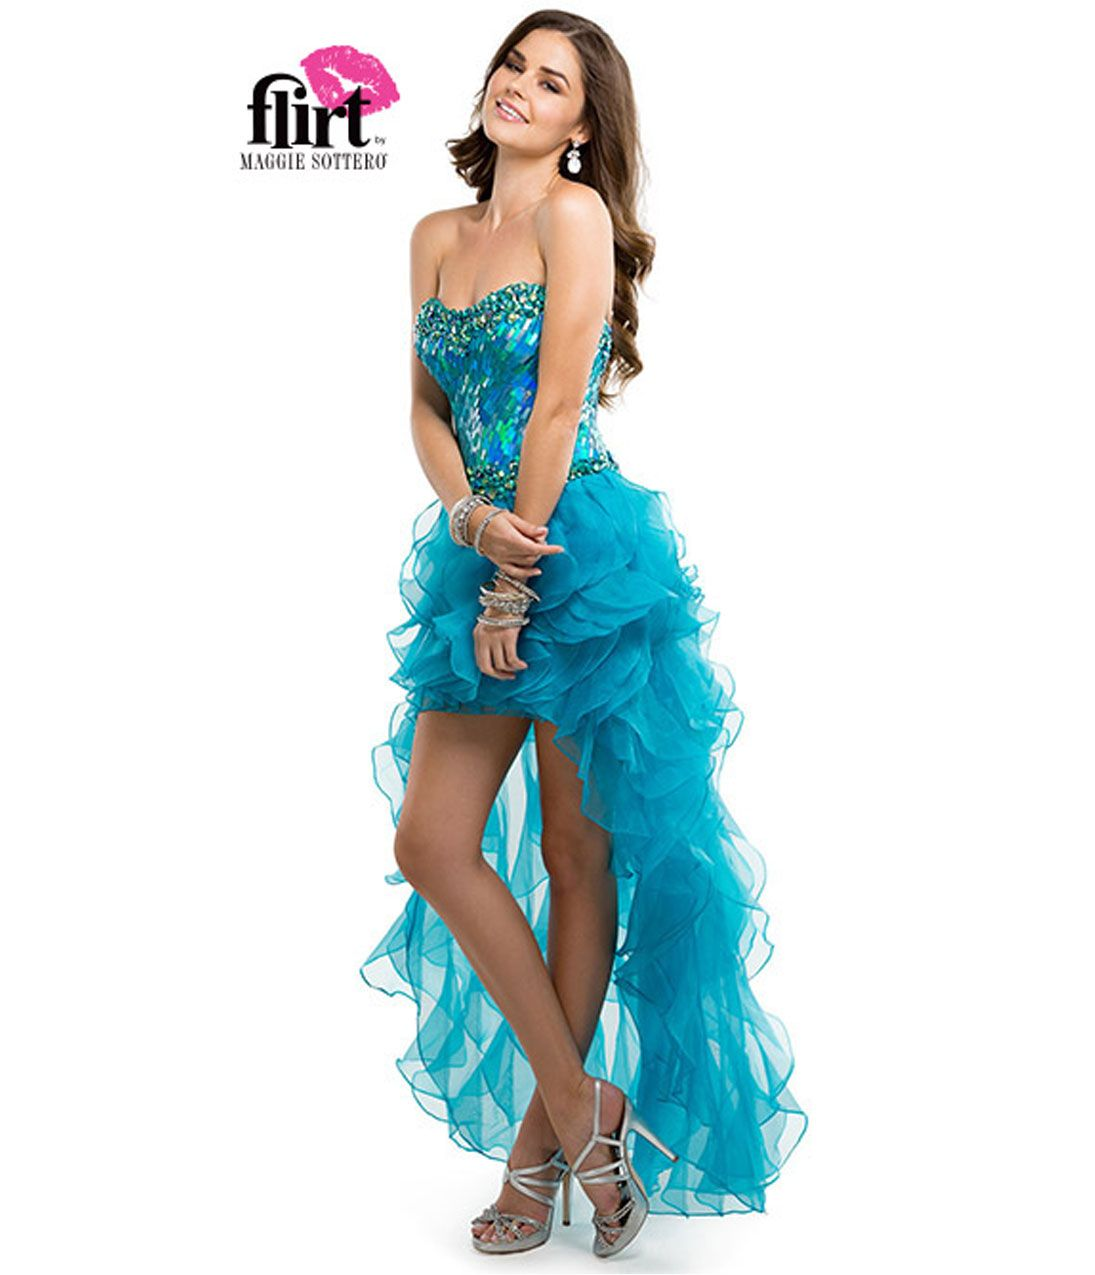 Flirt by Maggie Sottero 2014 Prom Dresses - Electric Teal High-Low ...